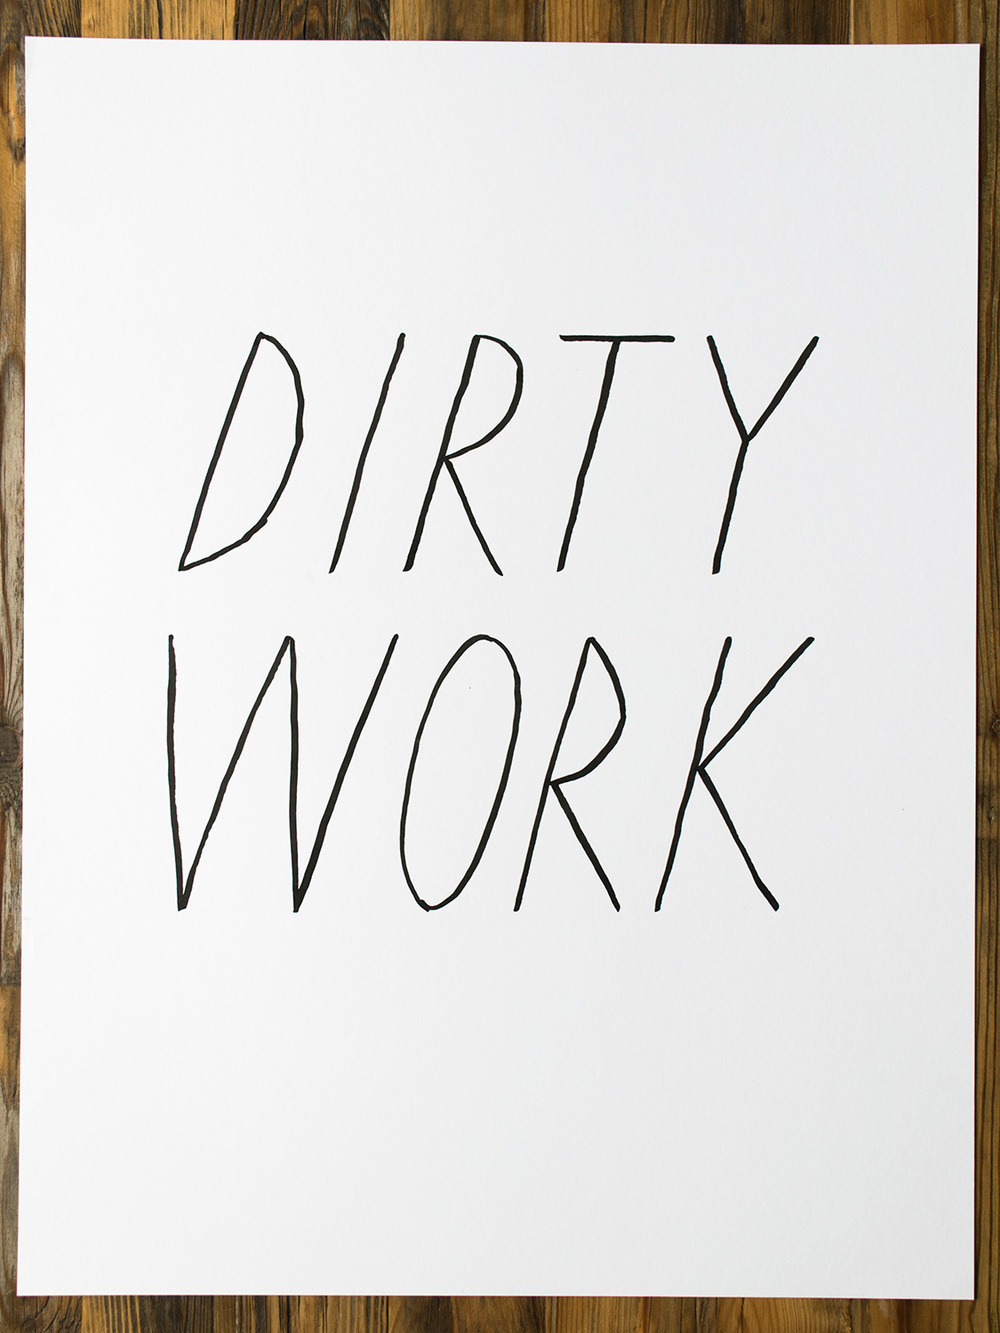 dirty_work-1500x1125.jpg